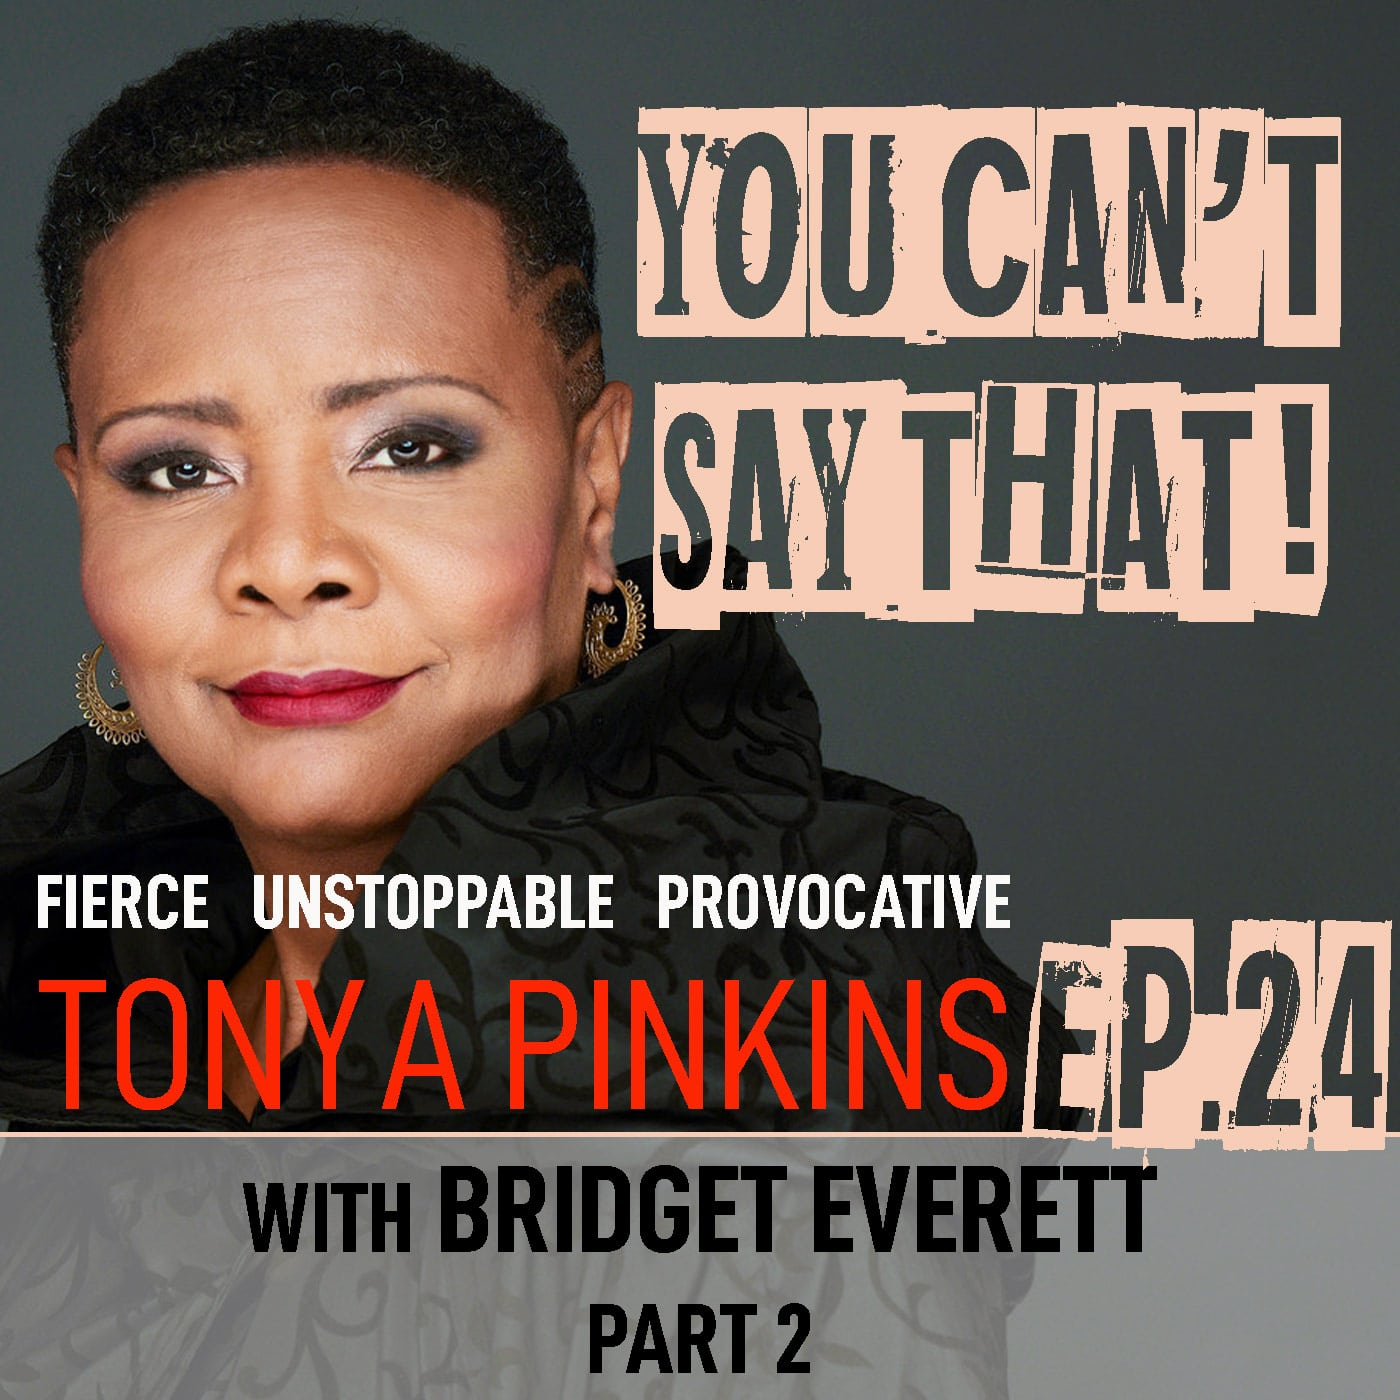 Tonya Pinikins - You Can't Say That Episode 24 - Bridget Everett (Part 2)